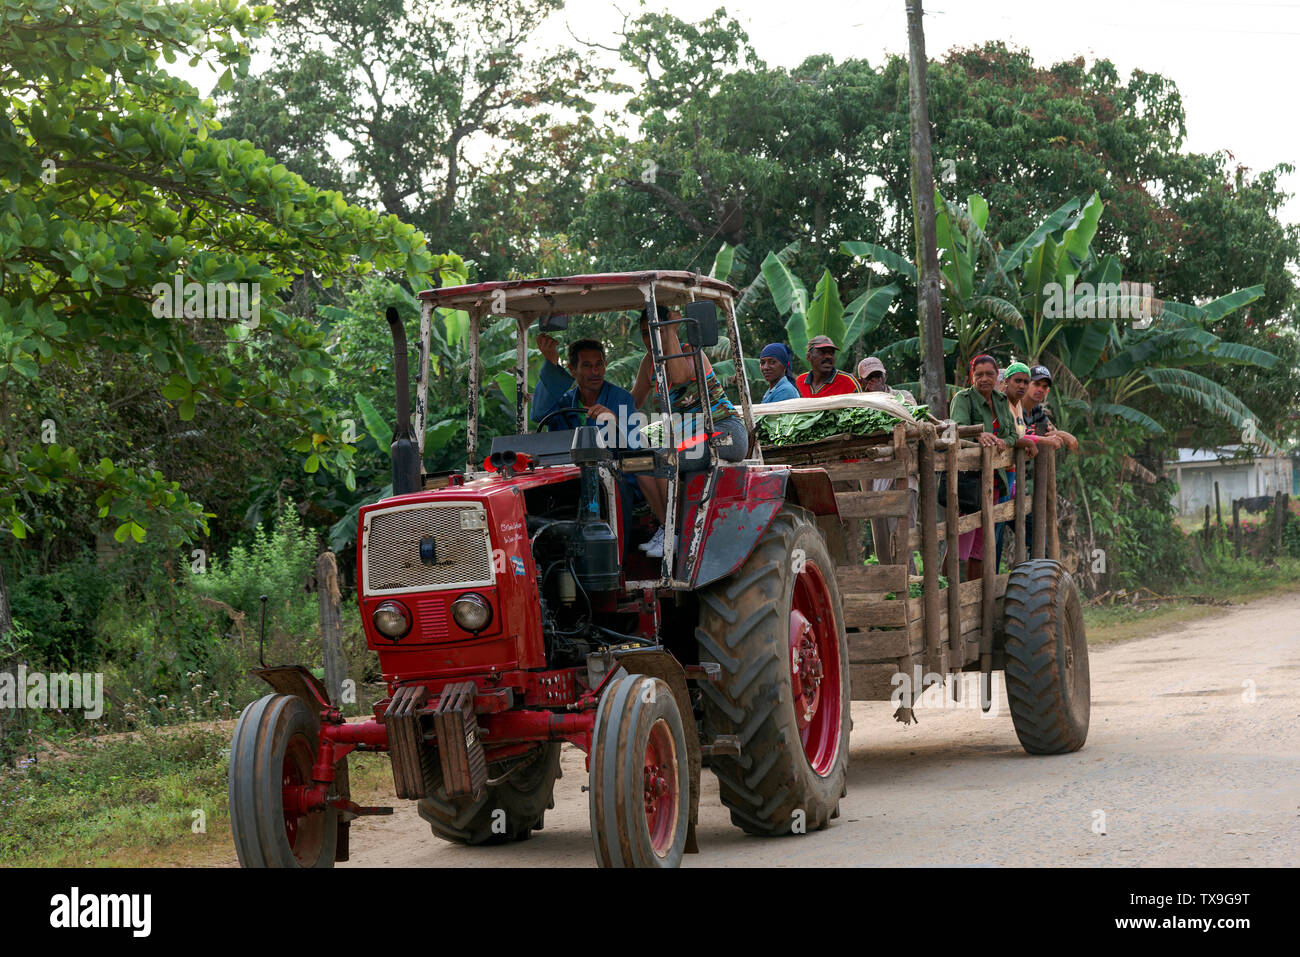 Tobacco workers being transported in a trailer after a days work picking leaves in the tobacco fields San Juan y Martinez,Pinar del Rio Province,Cuba - Stock Image